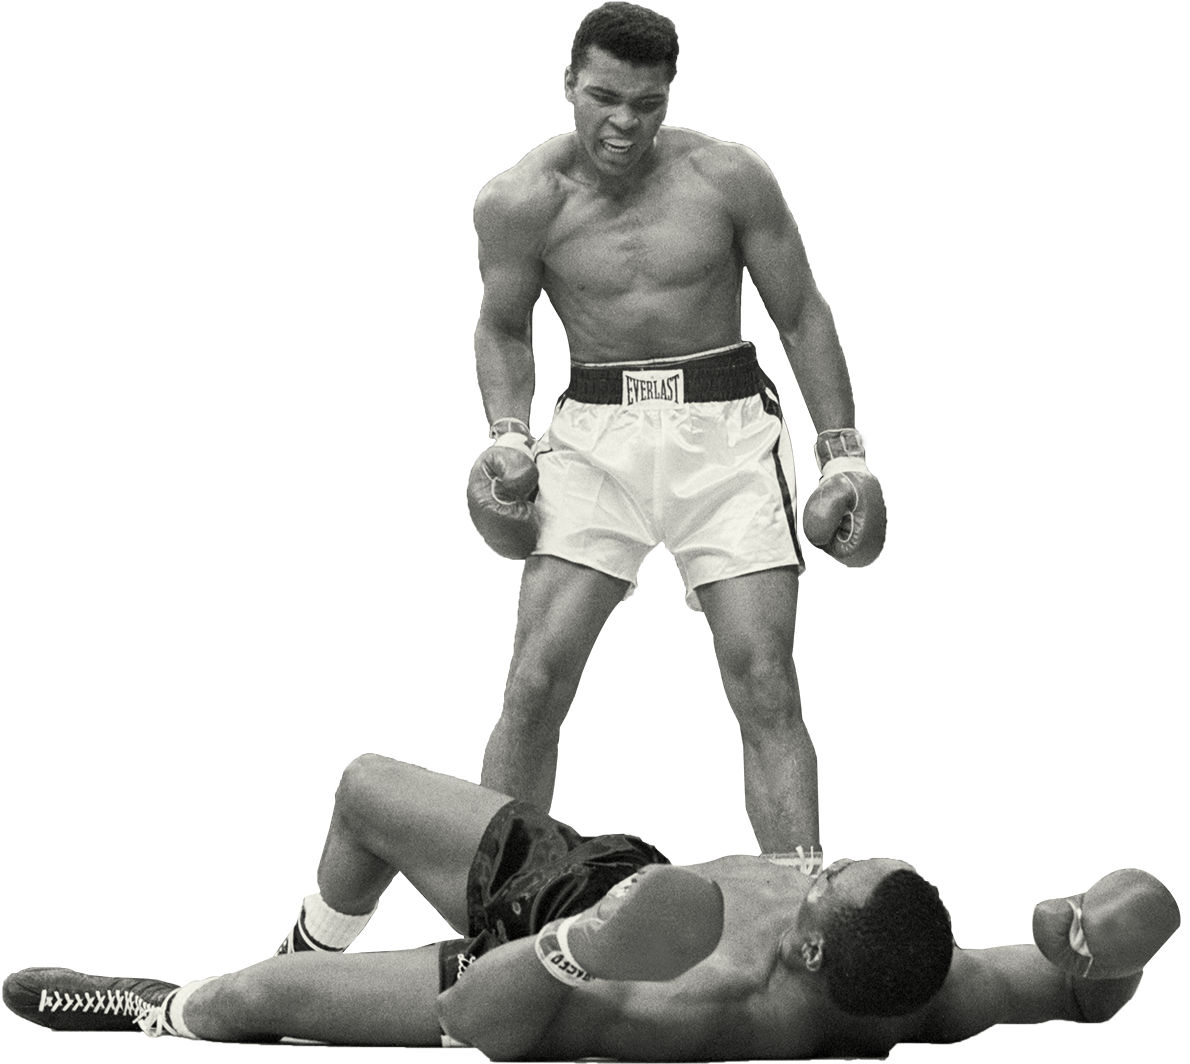 Manny Pacquiao Quotes Wallpaper Ron S American World Muhammad Ali